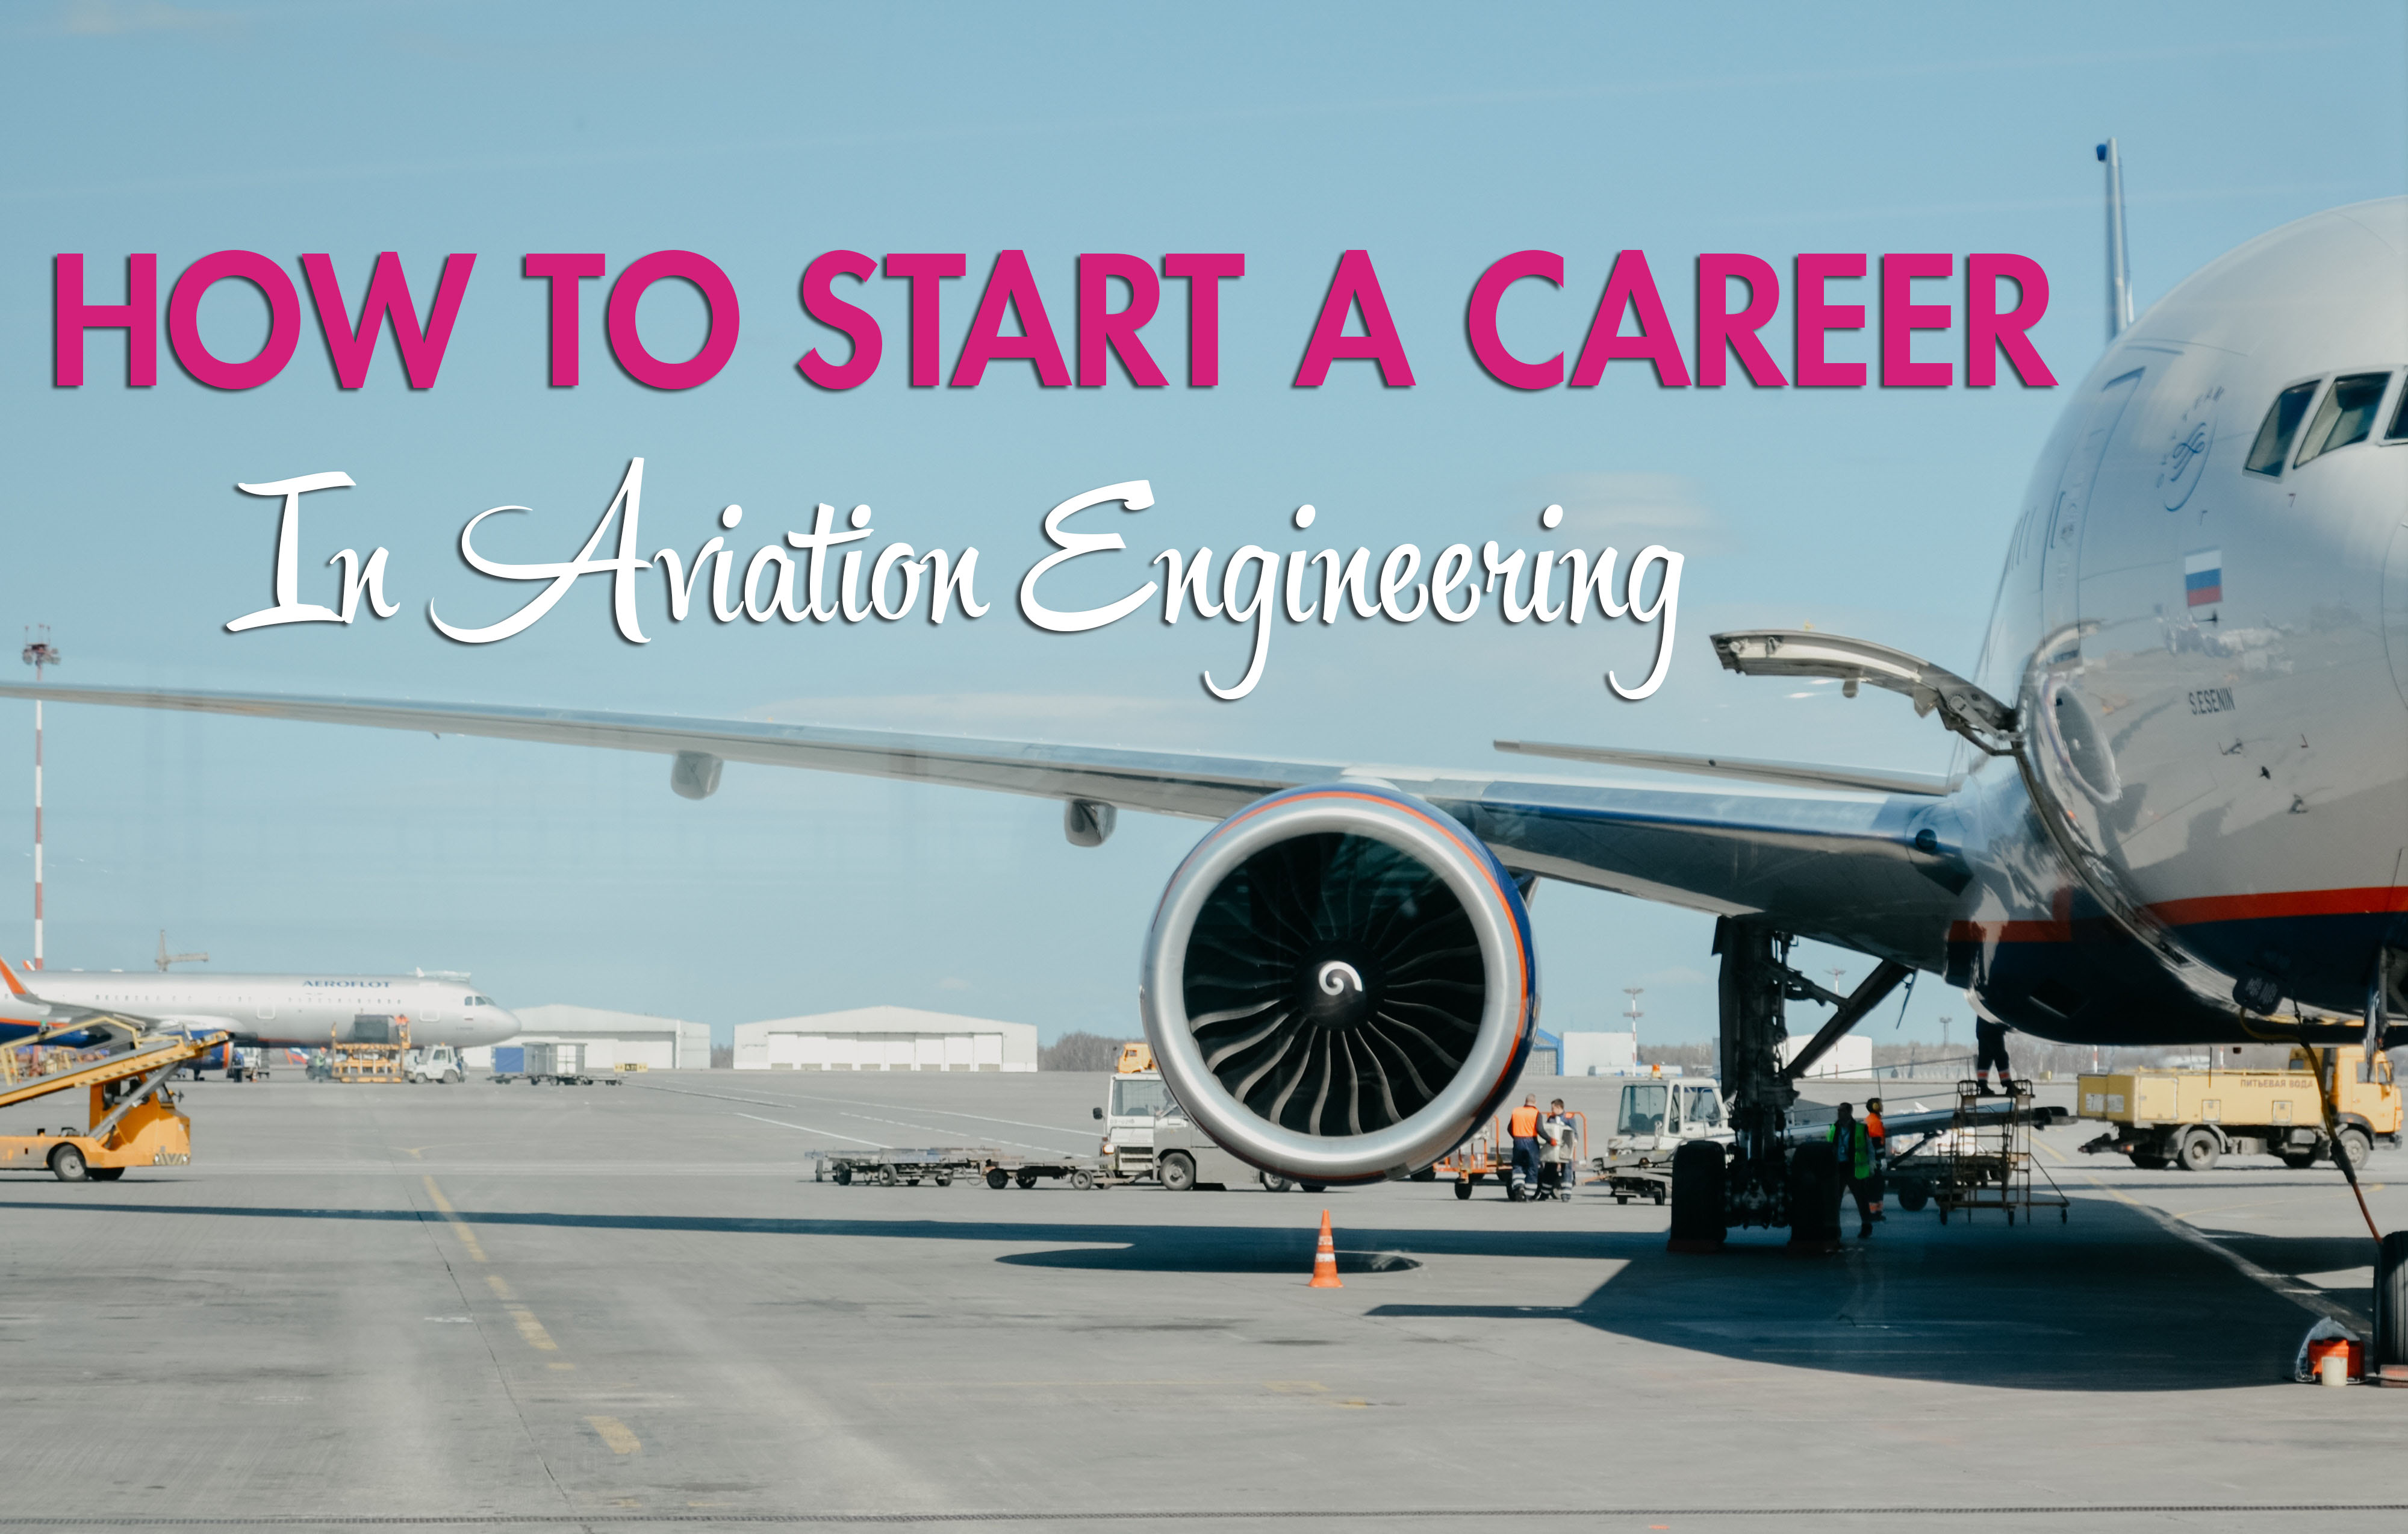 How to start a career in aviation engineering